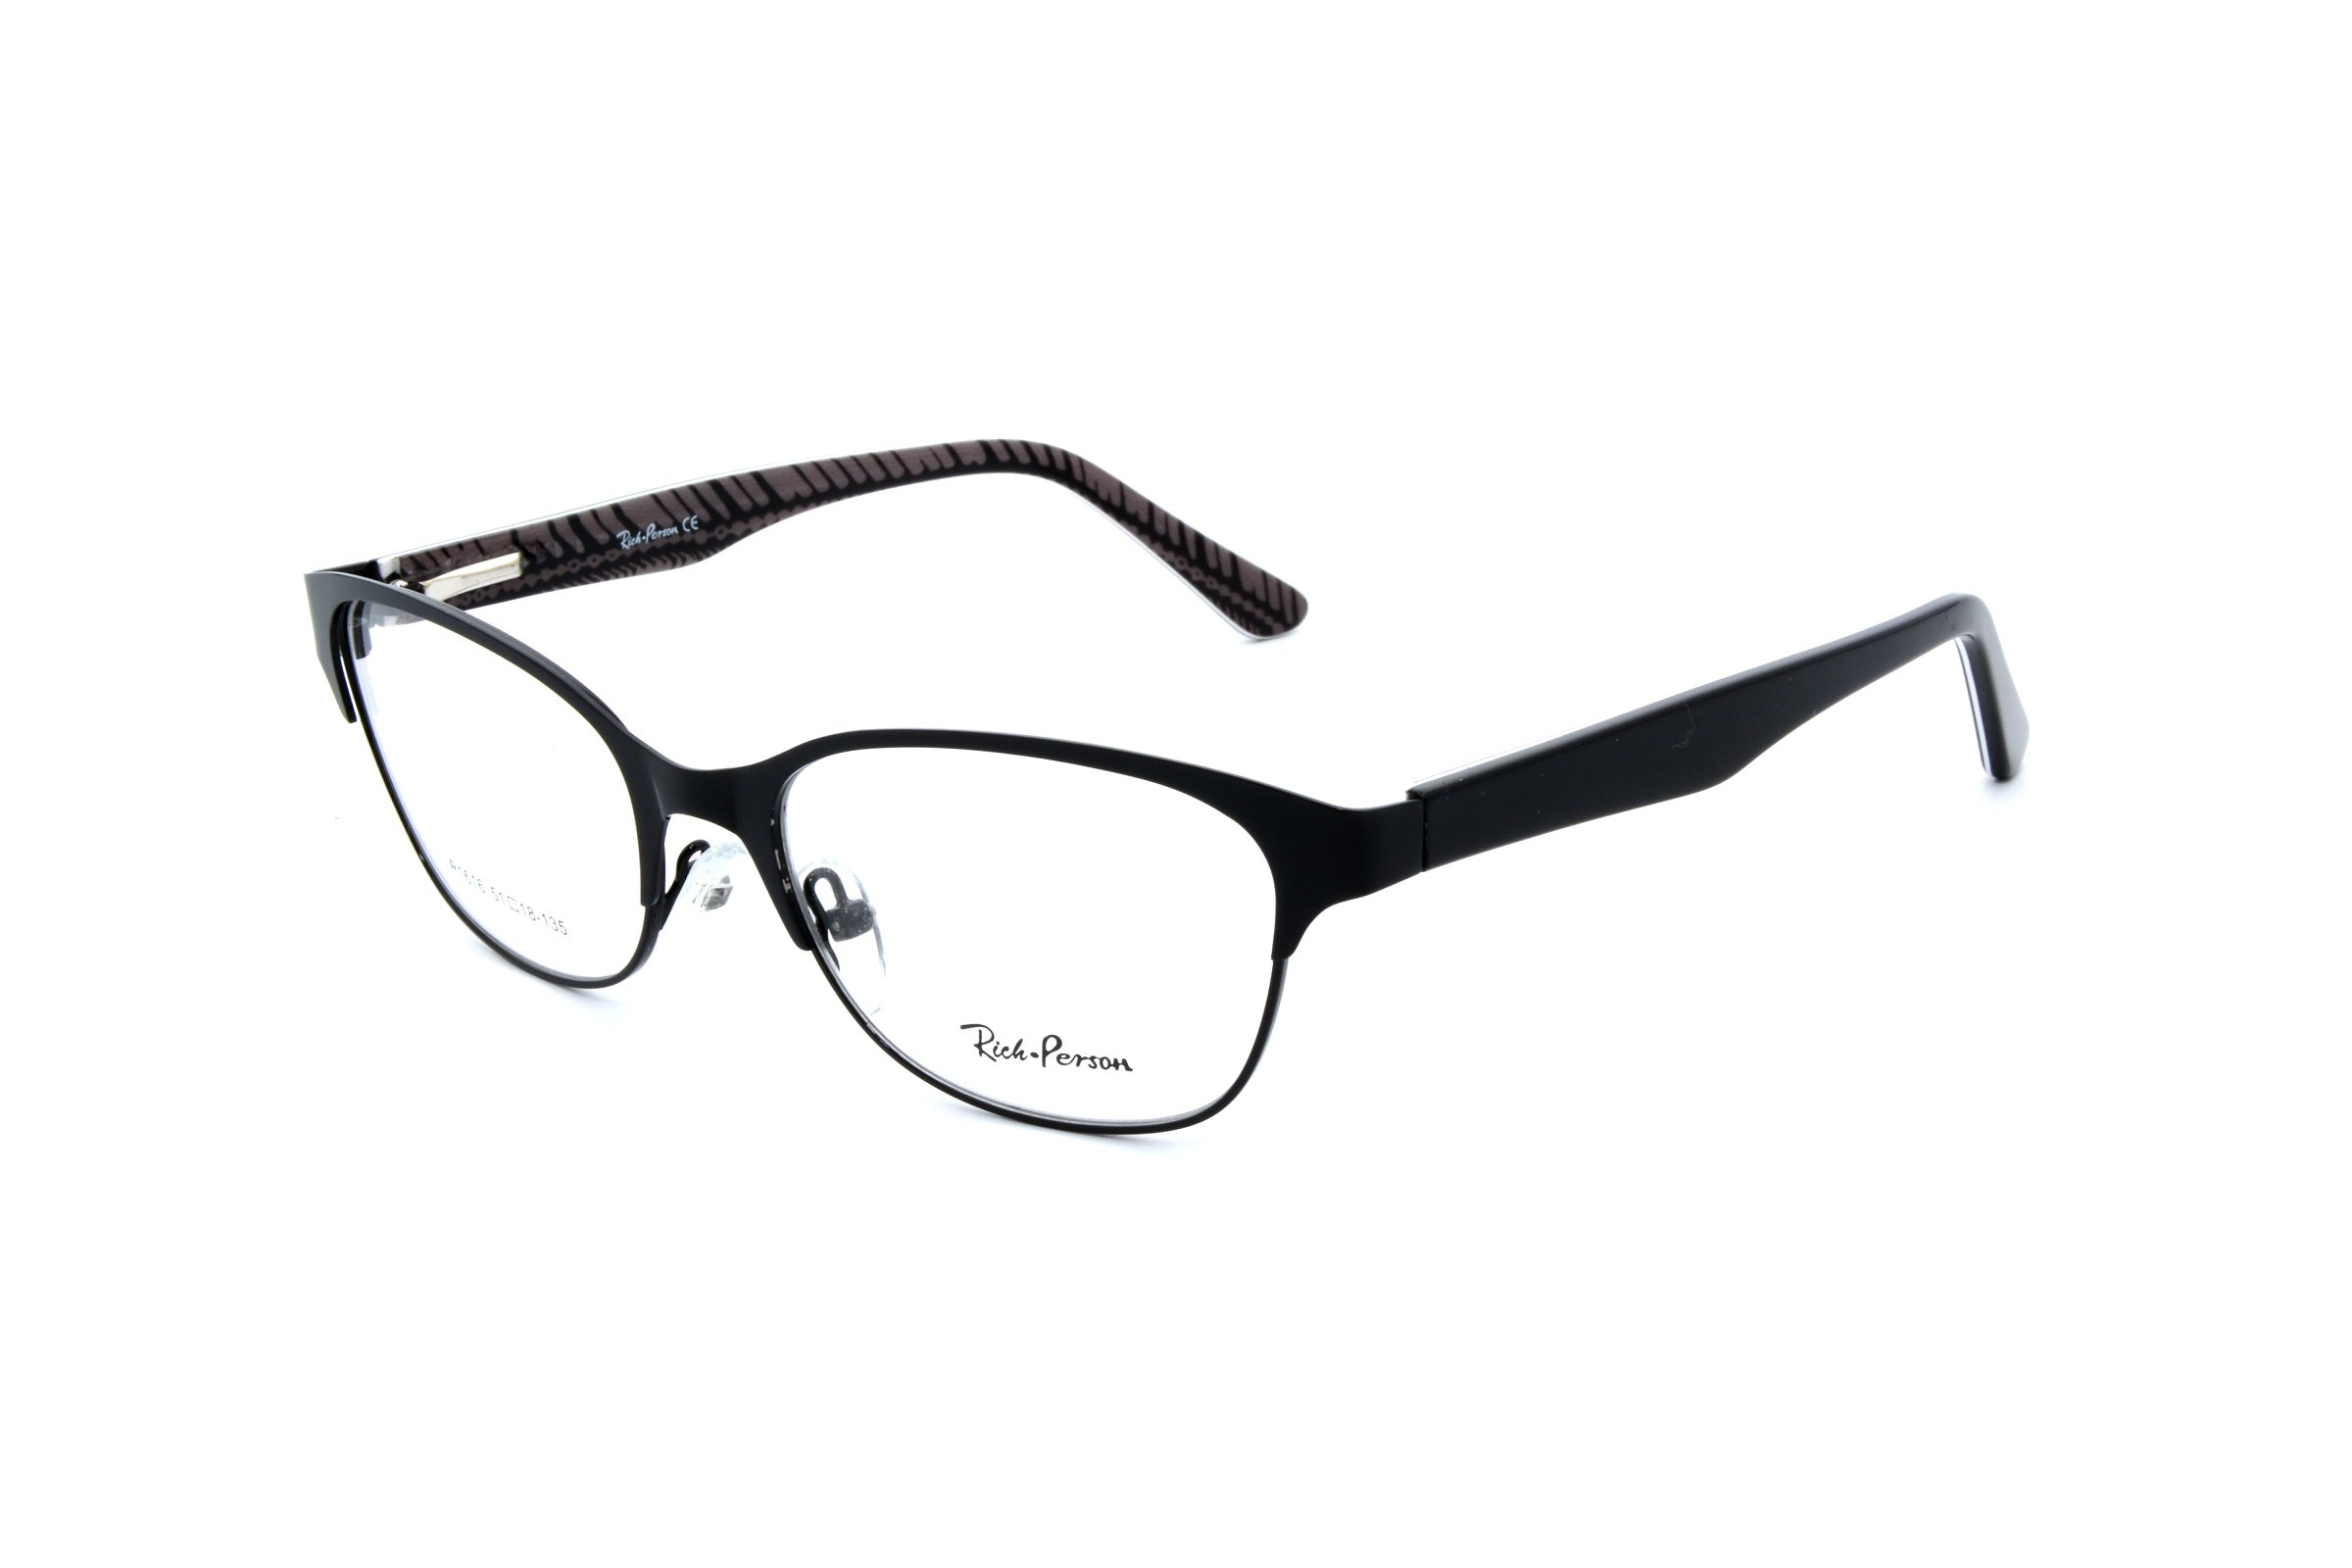 Rich person eyewear R1616, C2 - Optics Trading